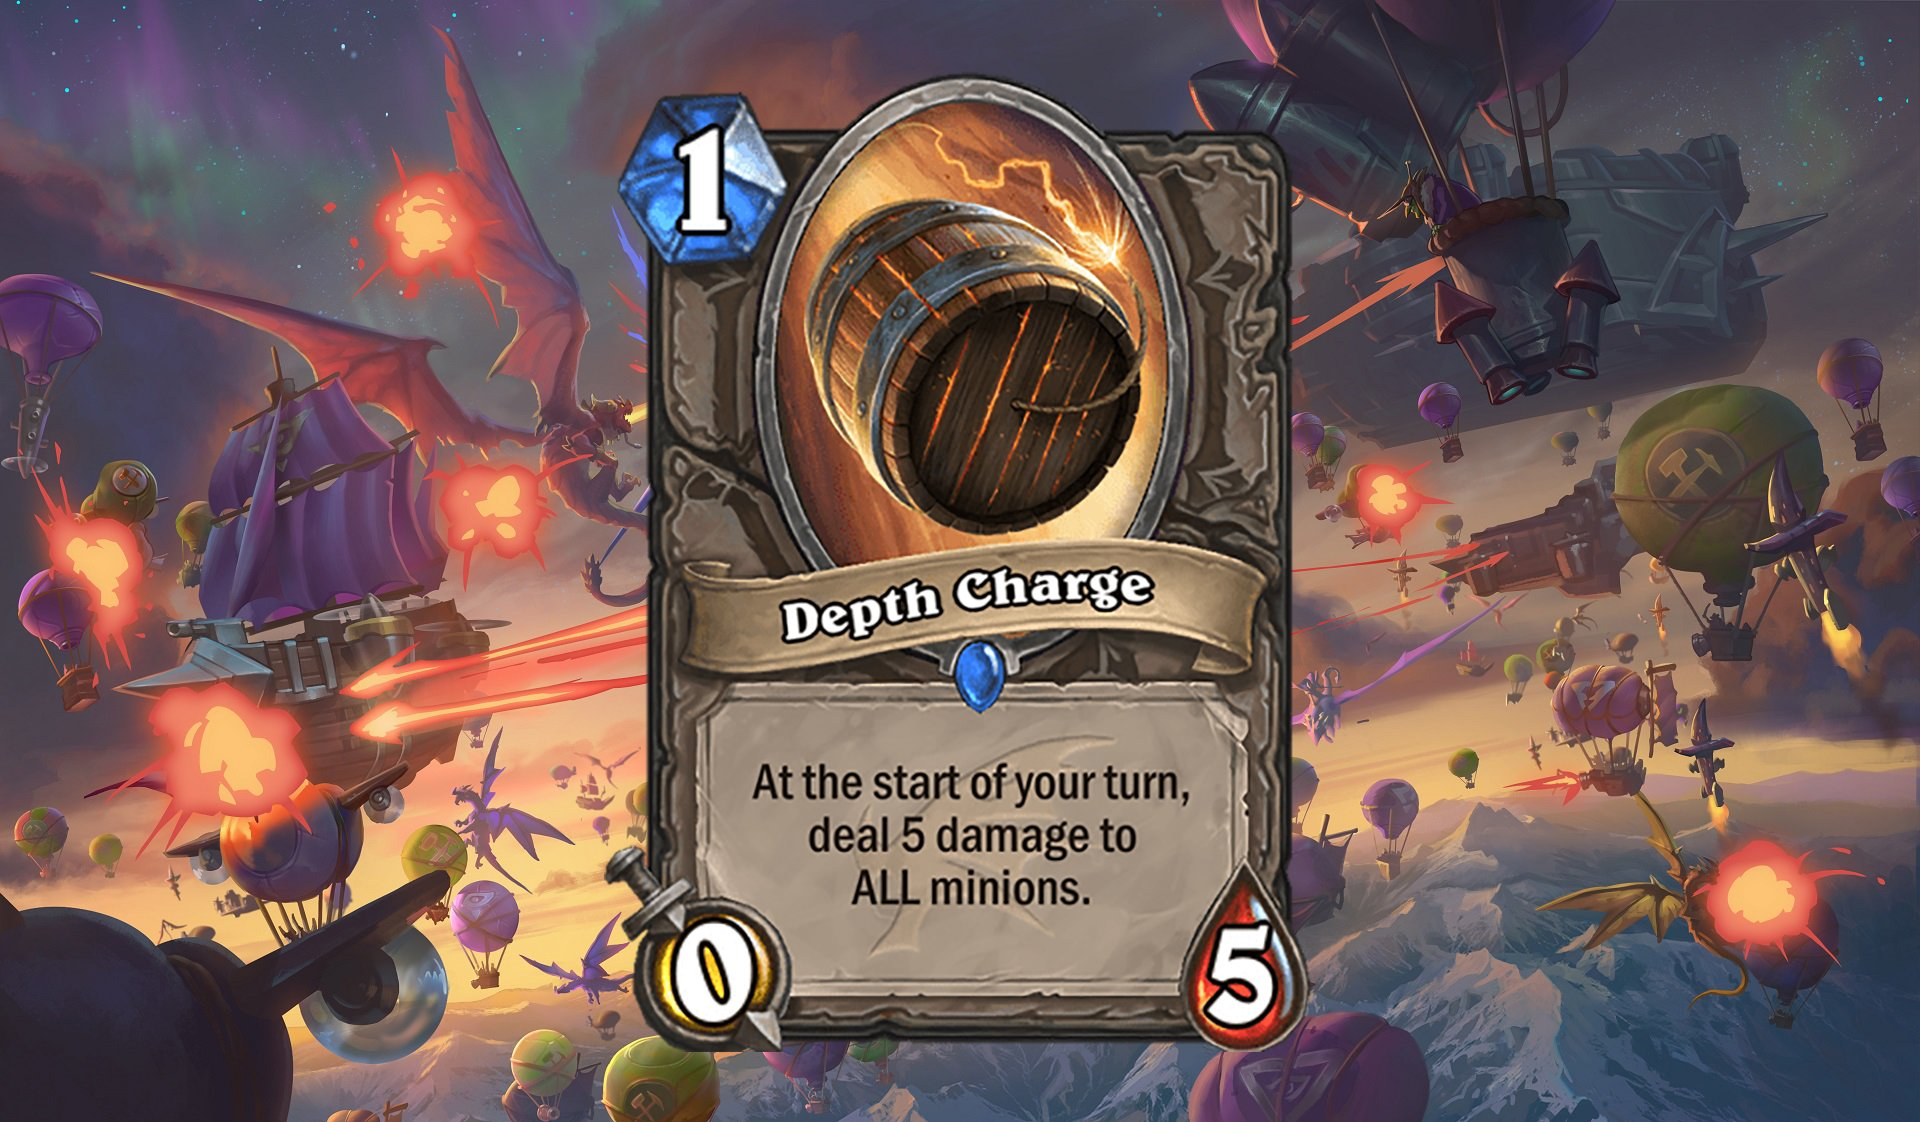 Hearthstone - Depth Charge